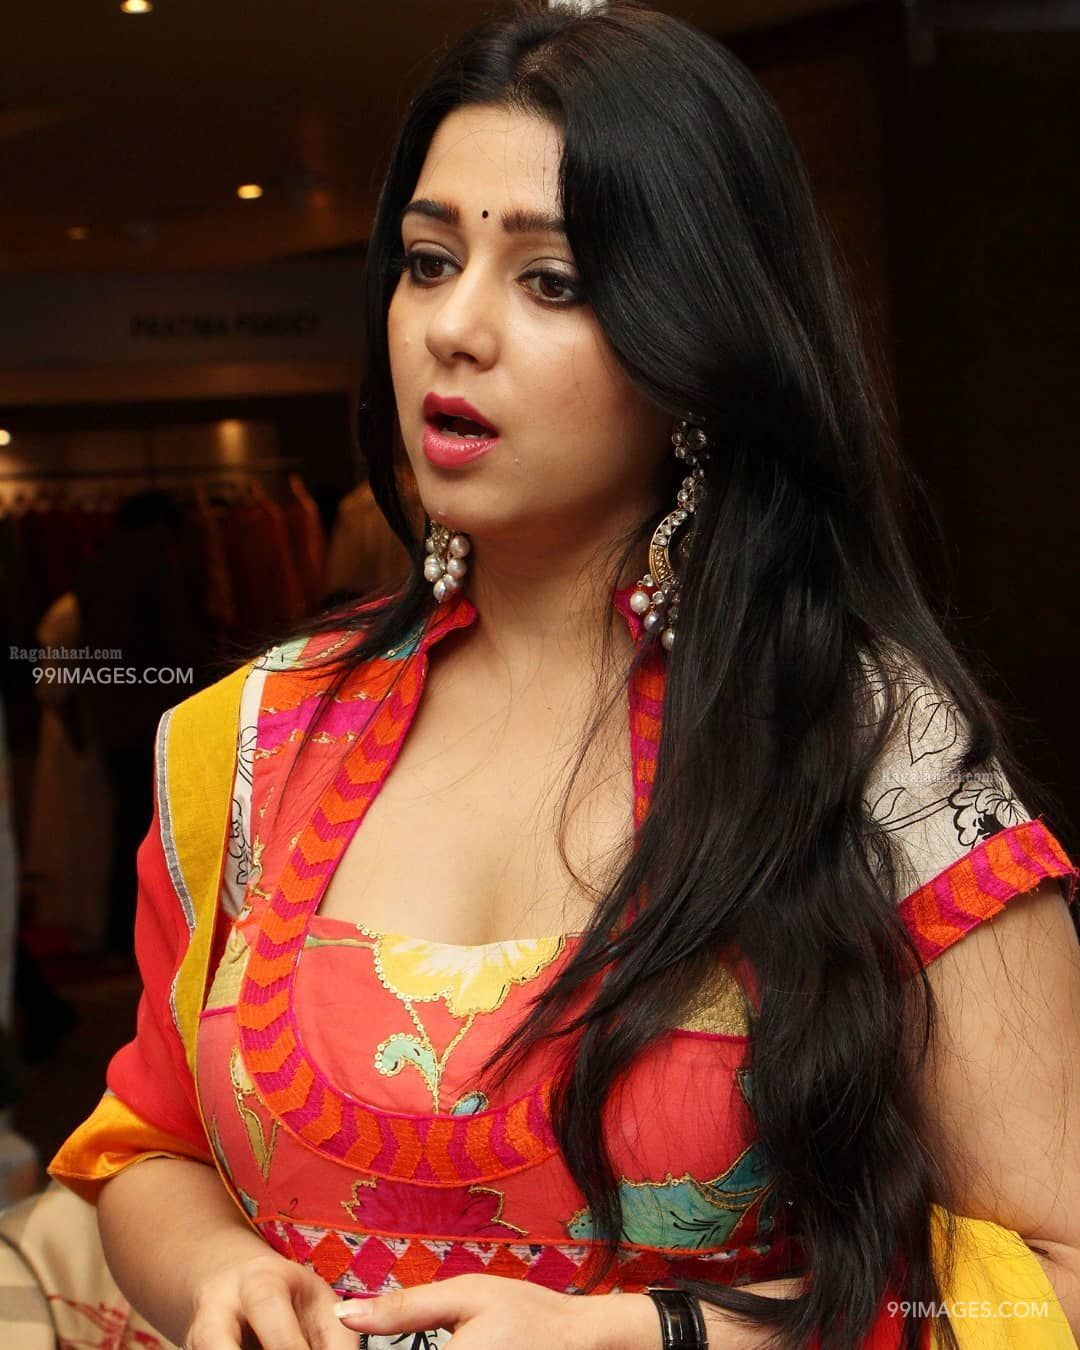 Charmy Kaur Beautiful Photos & Mobile Wallpapers HD (Android/iPhone) (1080p) (26007) - Charmy Kaur